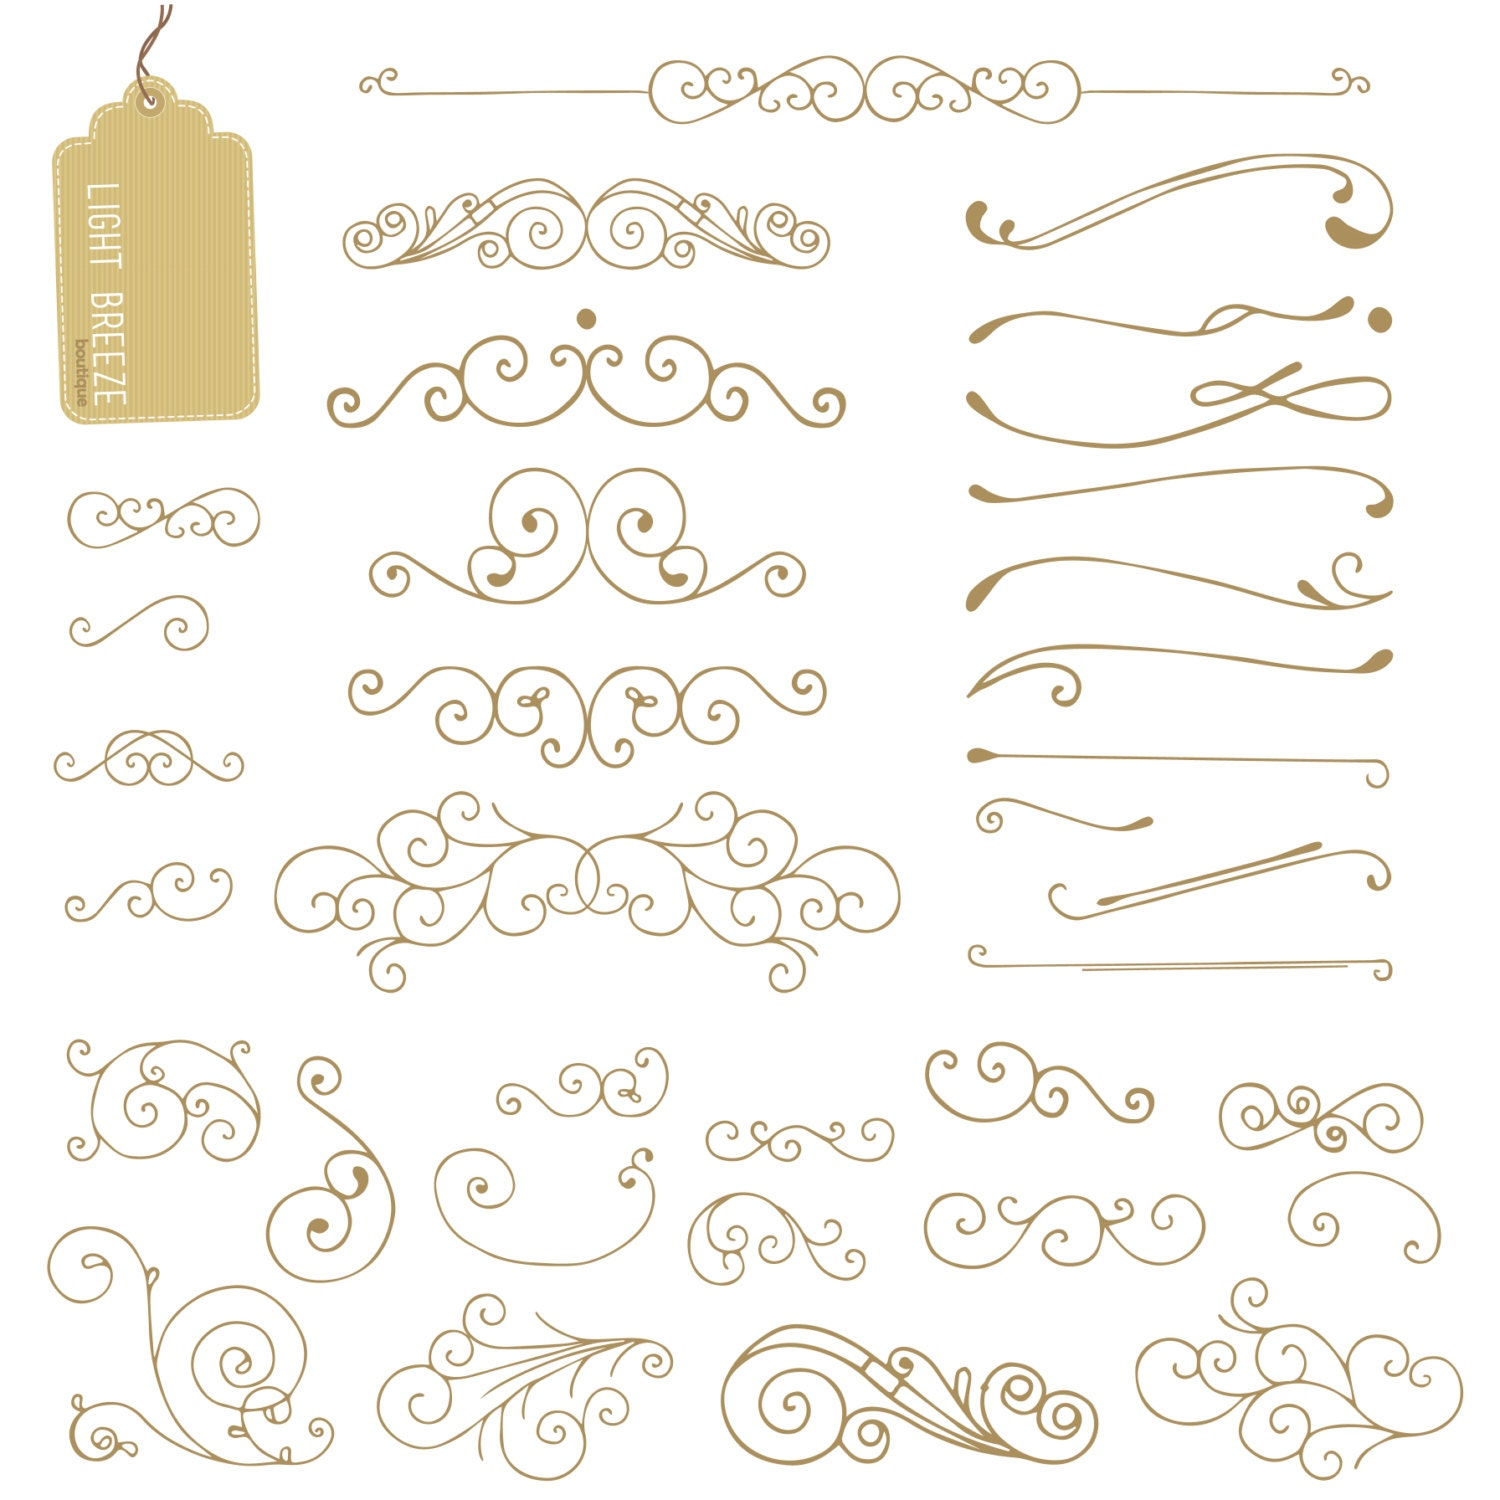 Popular items for divider clipart on Etsy